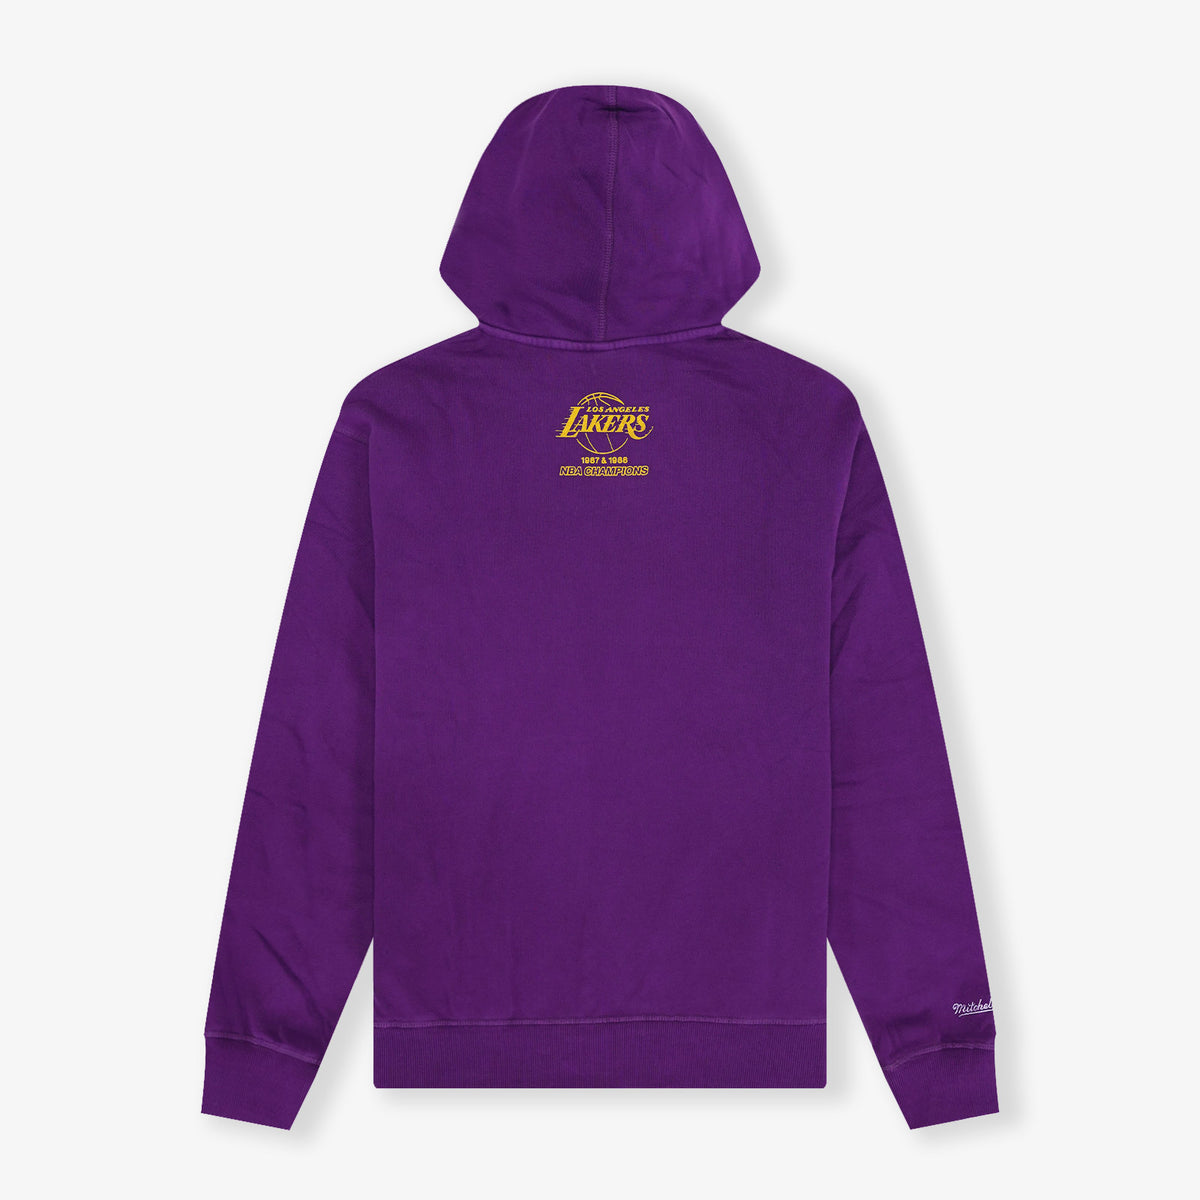 Los Angeles Lakers Vintage Logo Hoodie - Faded Purple